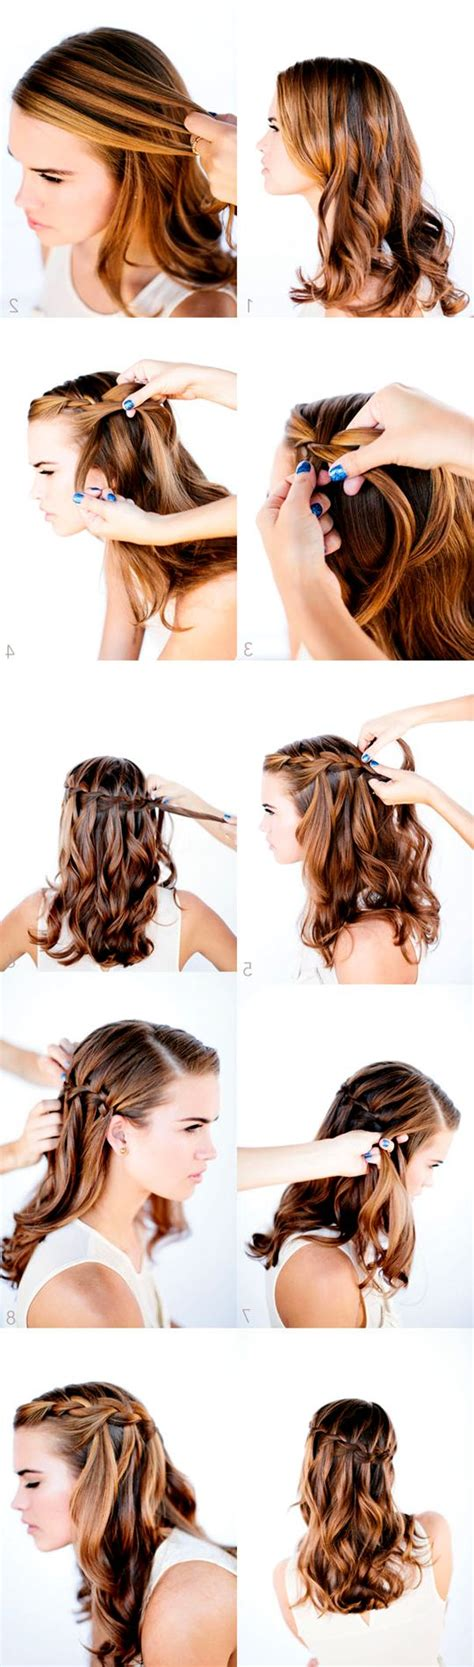 Hairstyles For School Step By Step With Pictures For Hair by 25 Best Ideas About School Picture Hairstyles On